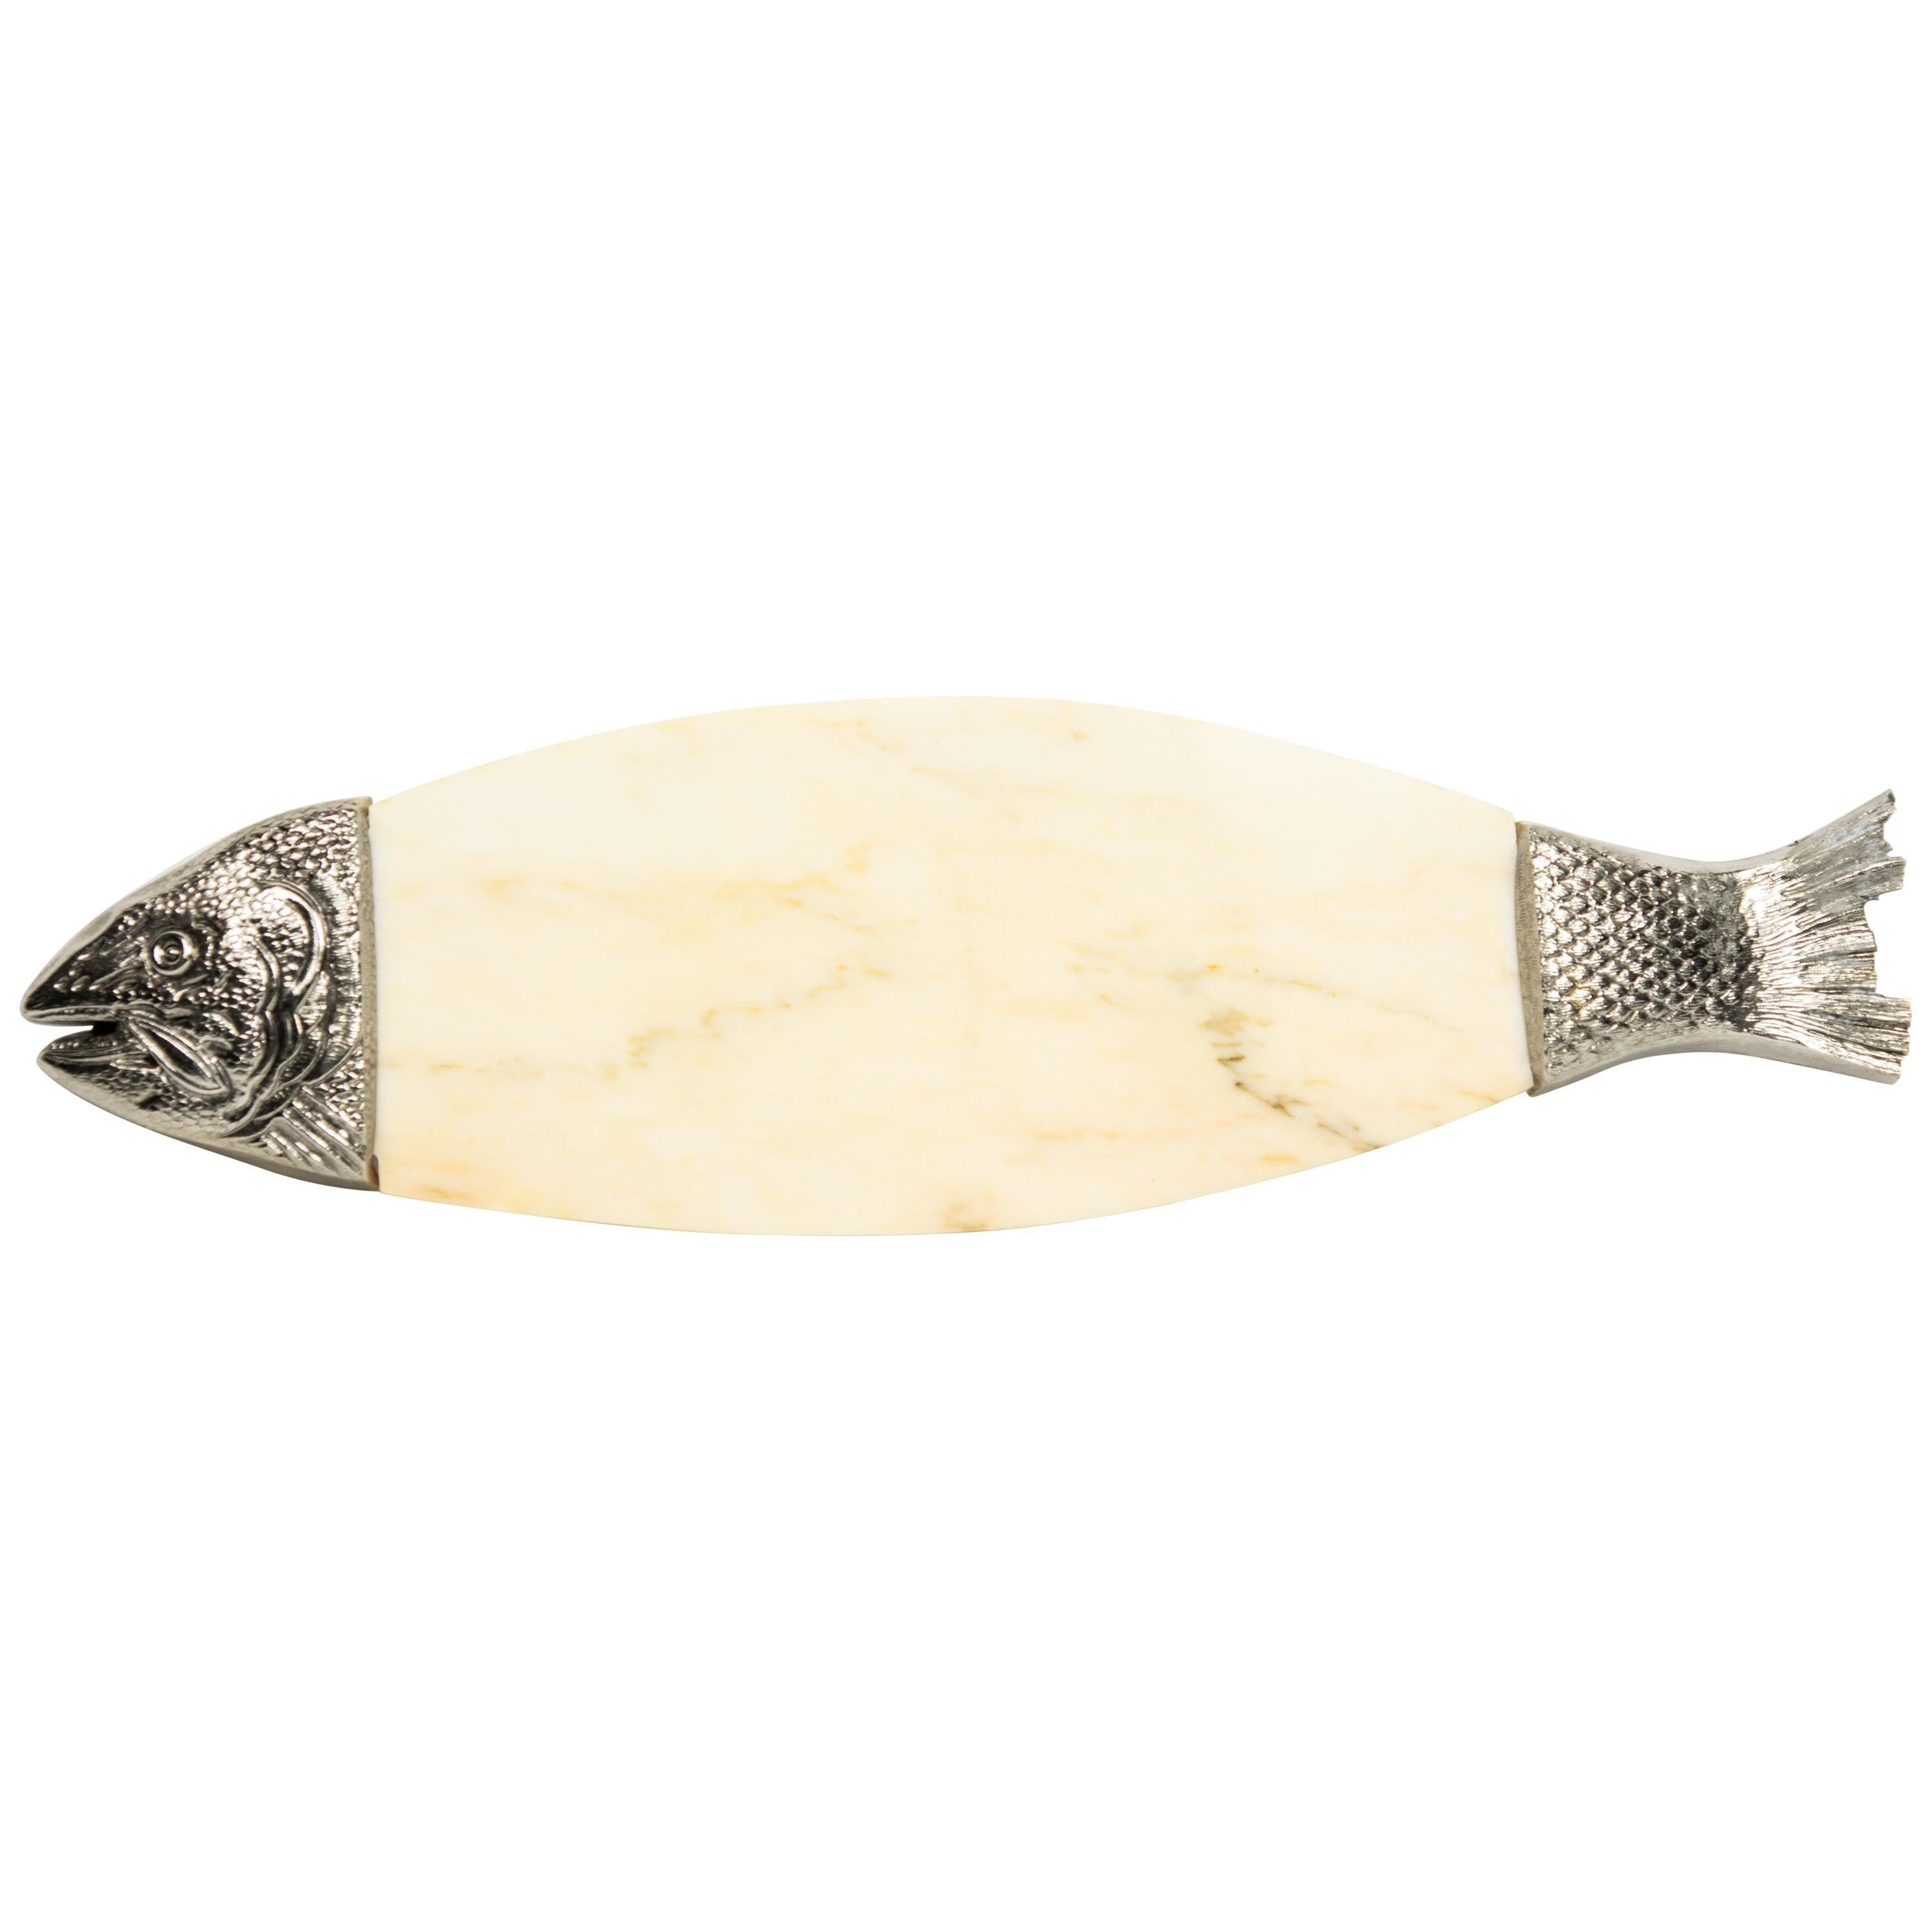 20th Century Marble Pewter Fish Salmon Serving Cutting Board Platter Tray